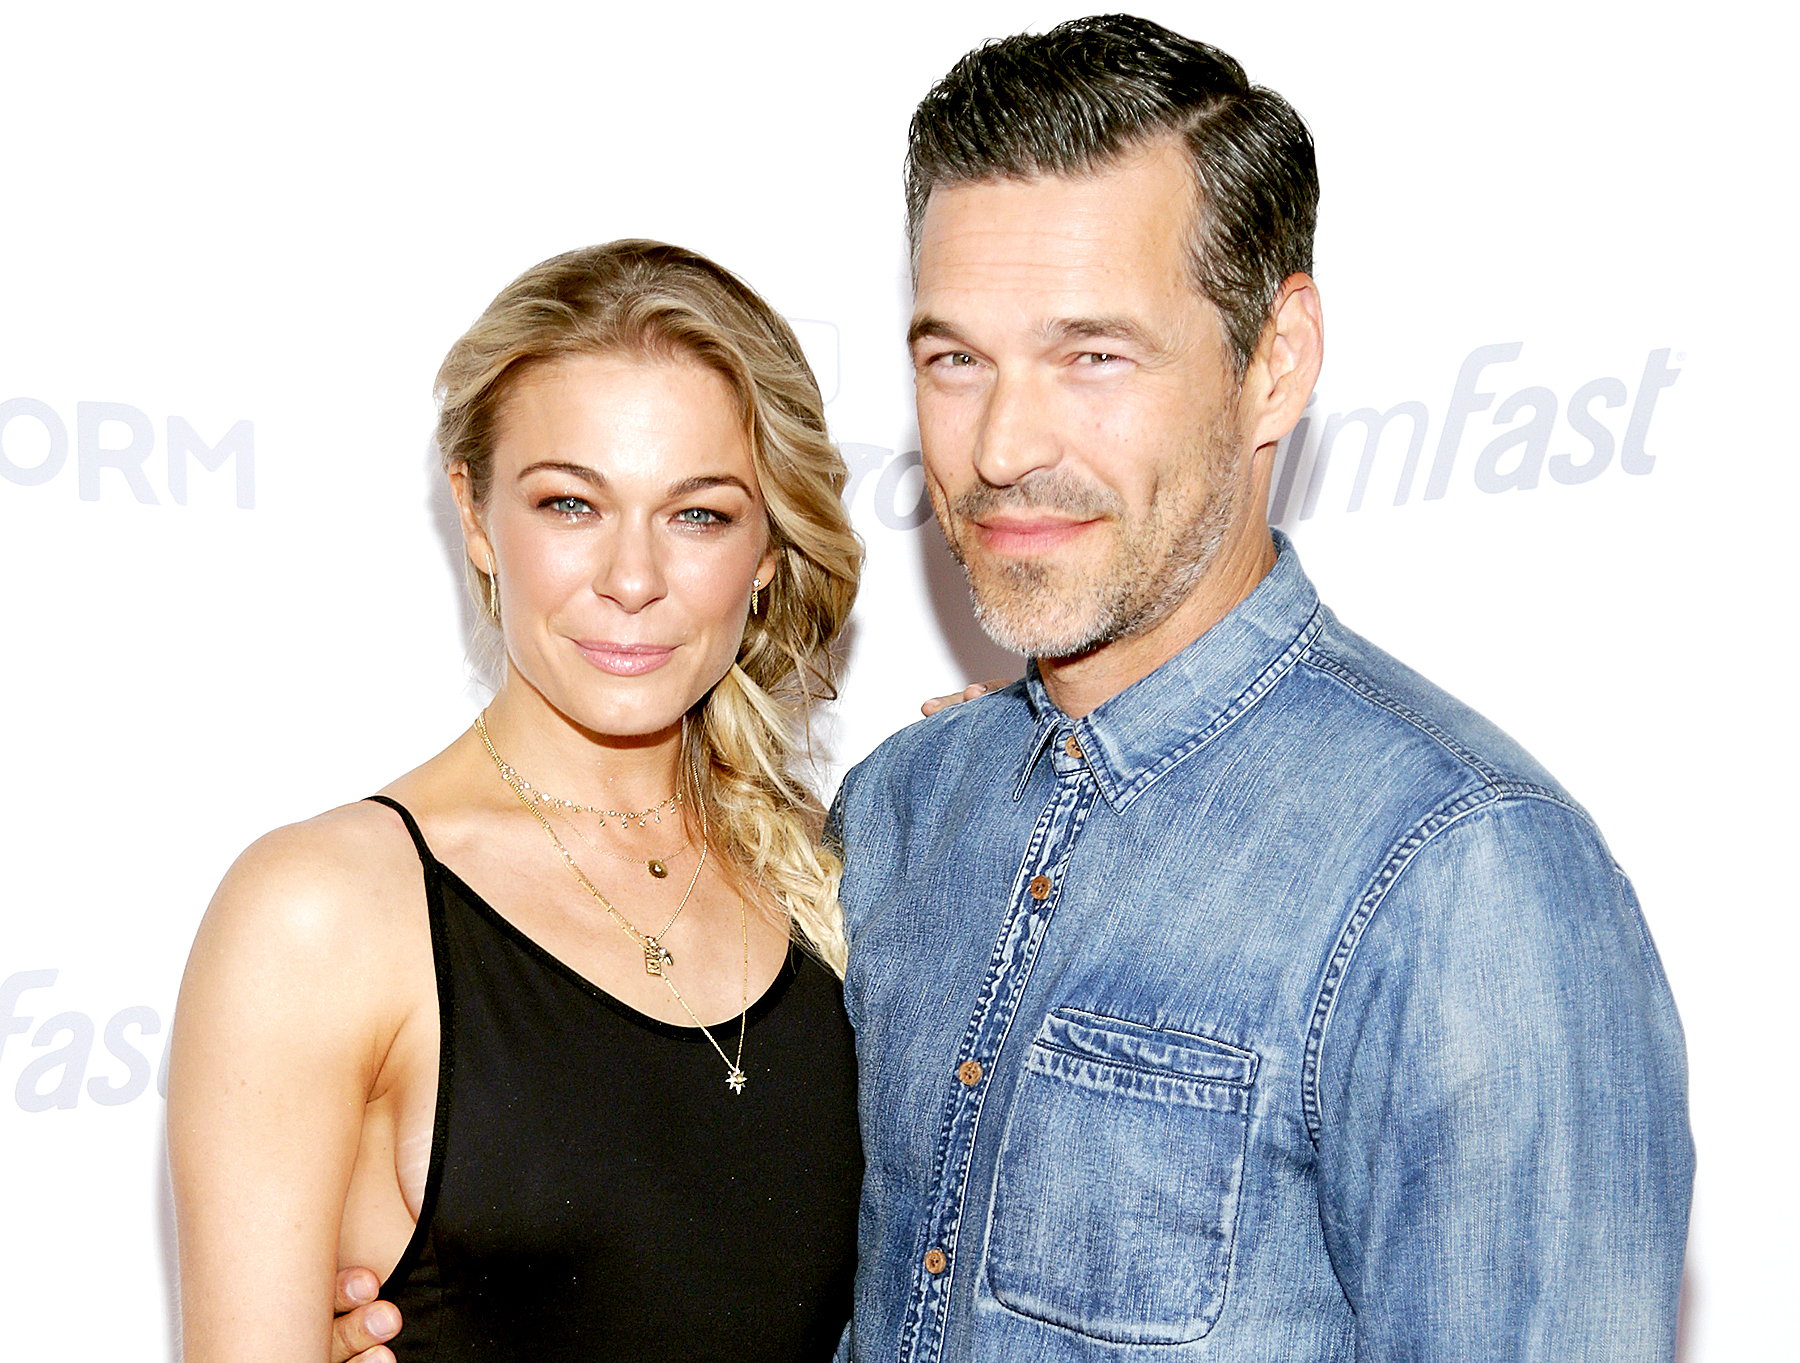 LeAnn Rimes and Eddie Cibrian attend the OK! Magazine's Summer Kick-Off party at W Hollywood on May 17, 2017 in Hollywood, California.